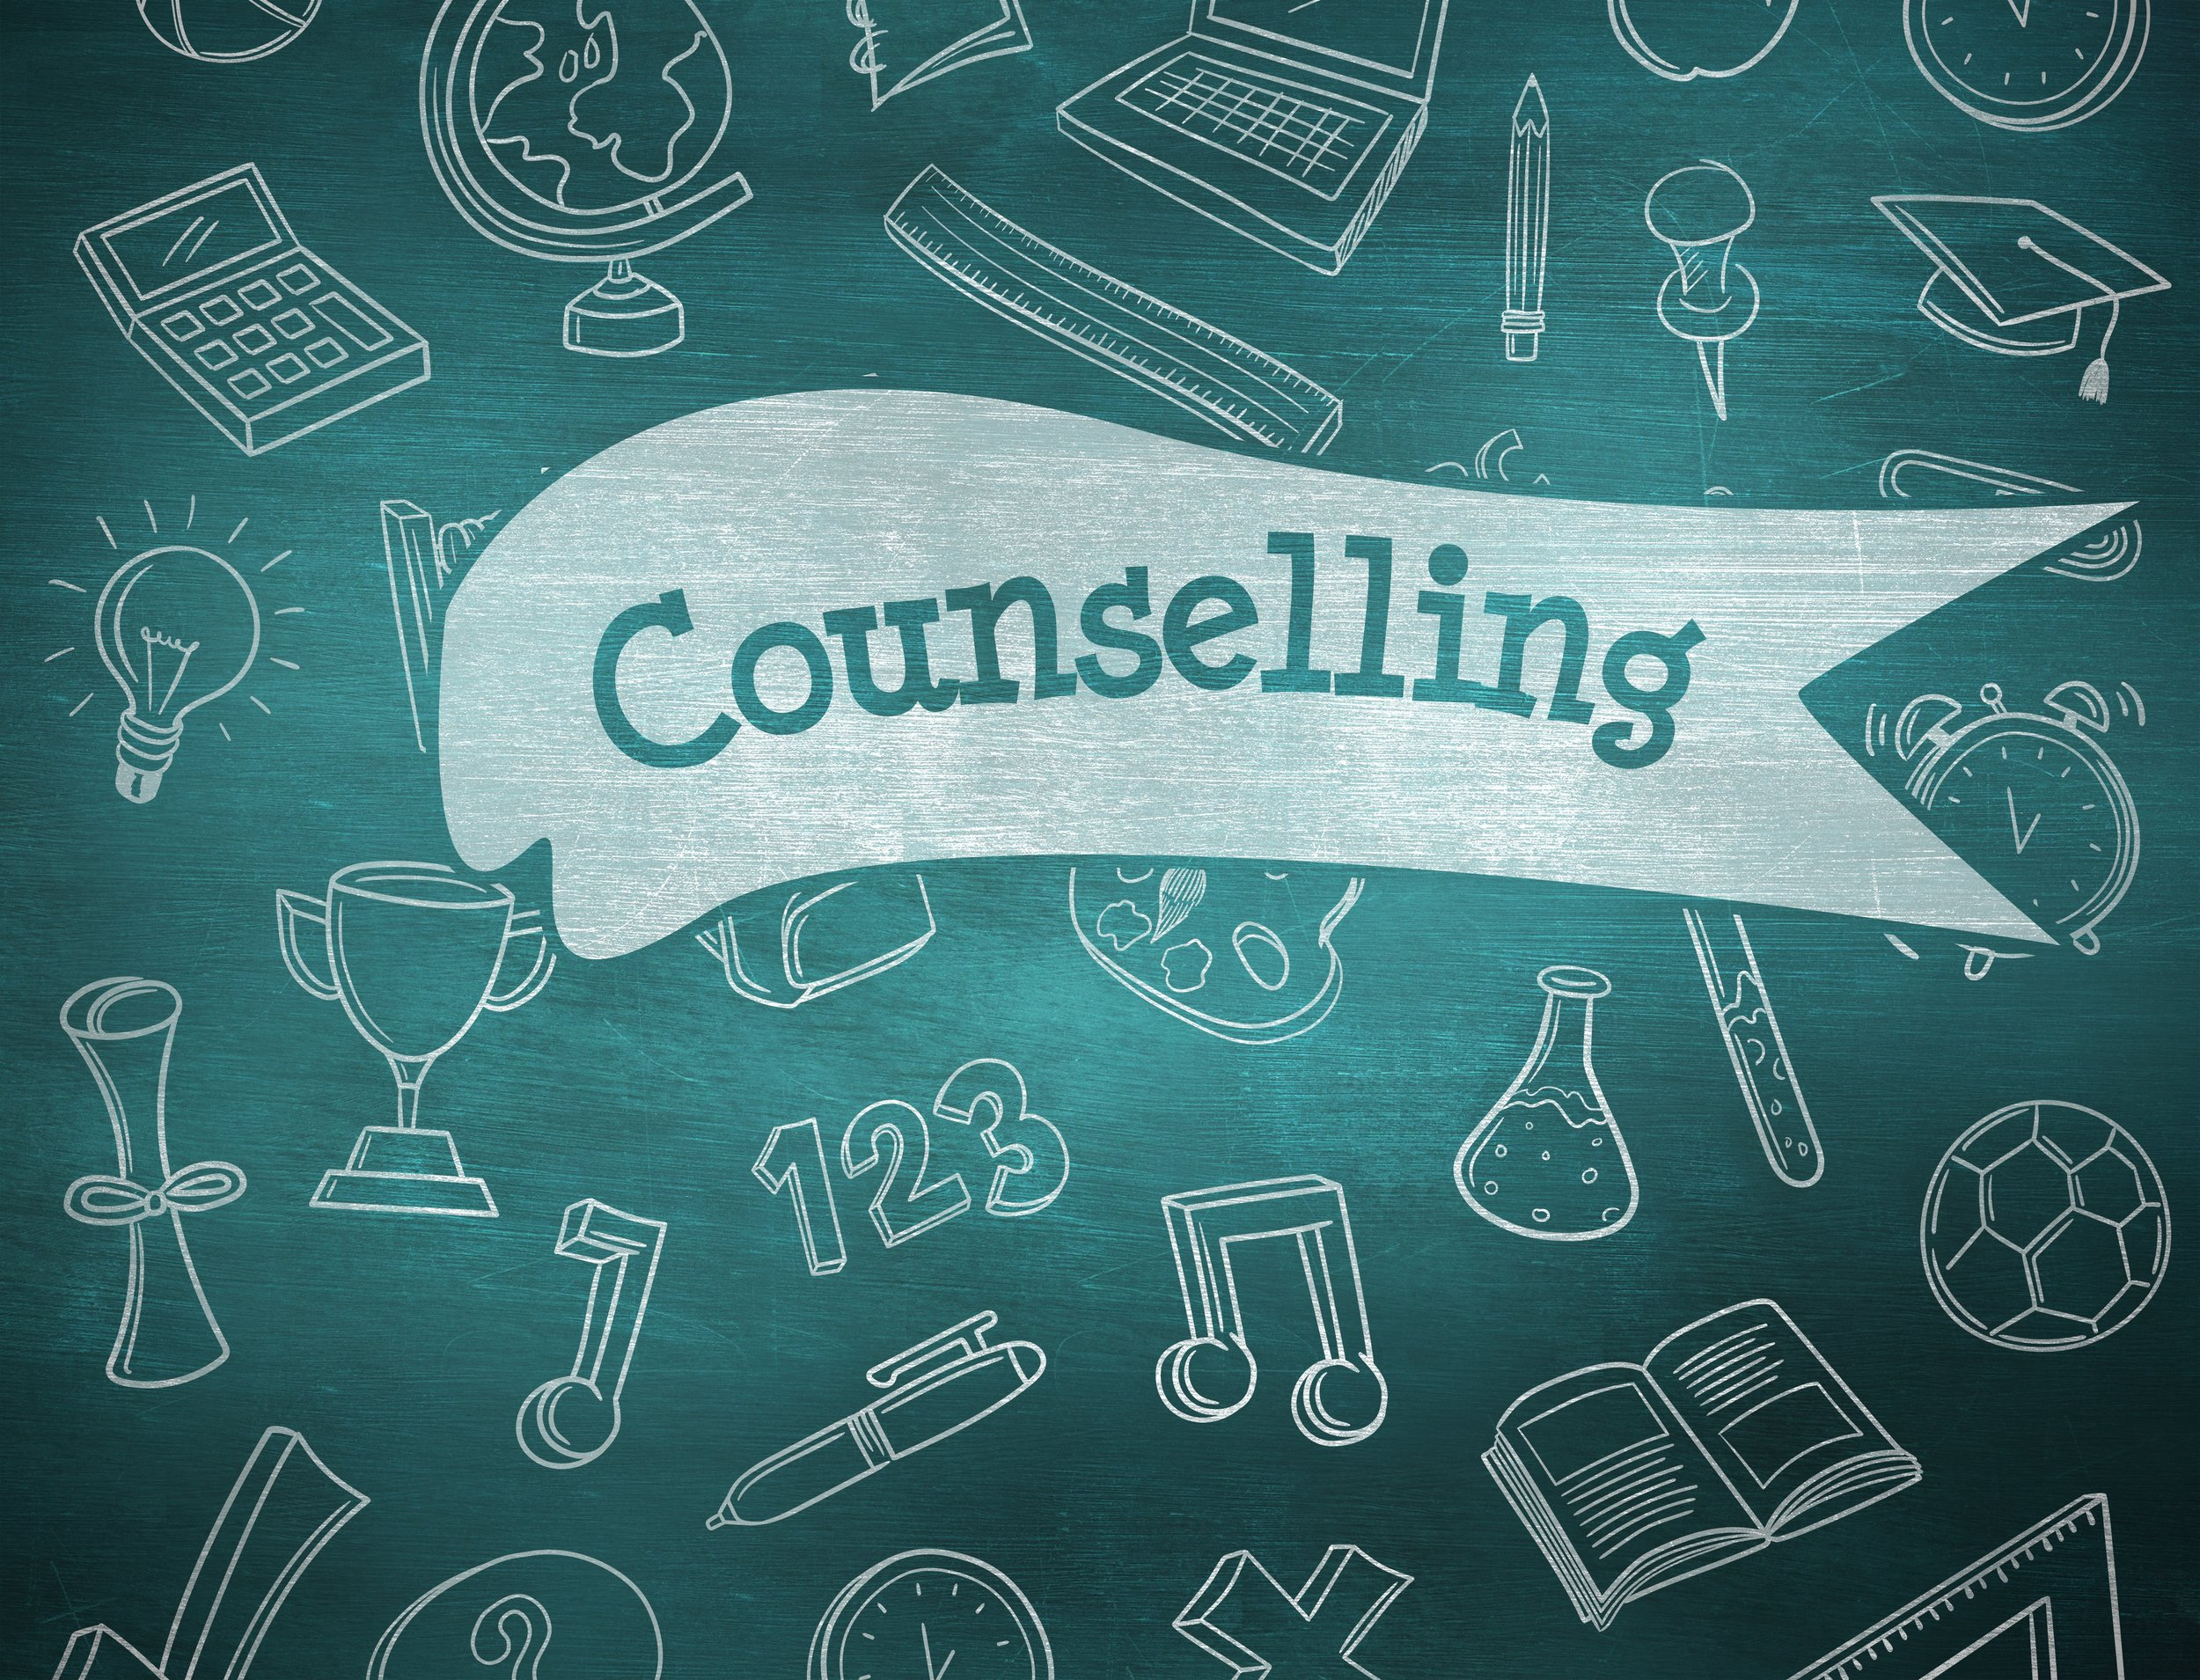 Counseling can help with... - » Anxiety and Stress» Academic Underperformance» Behavioral Problems» ADHD Symptoms, concentration difficulties » Depression» Relationship Issues » Connection to Community Resources